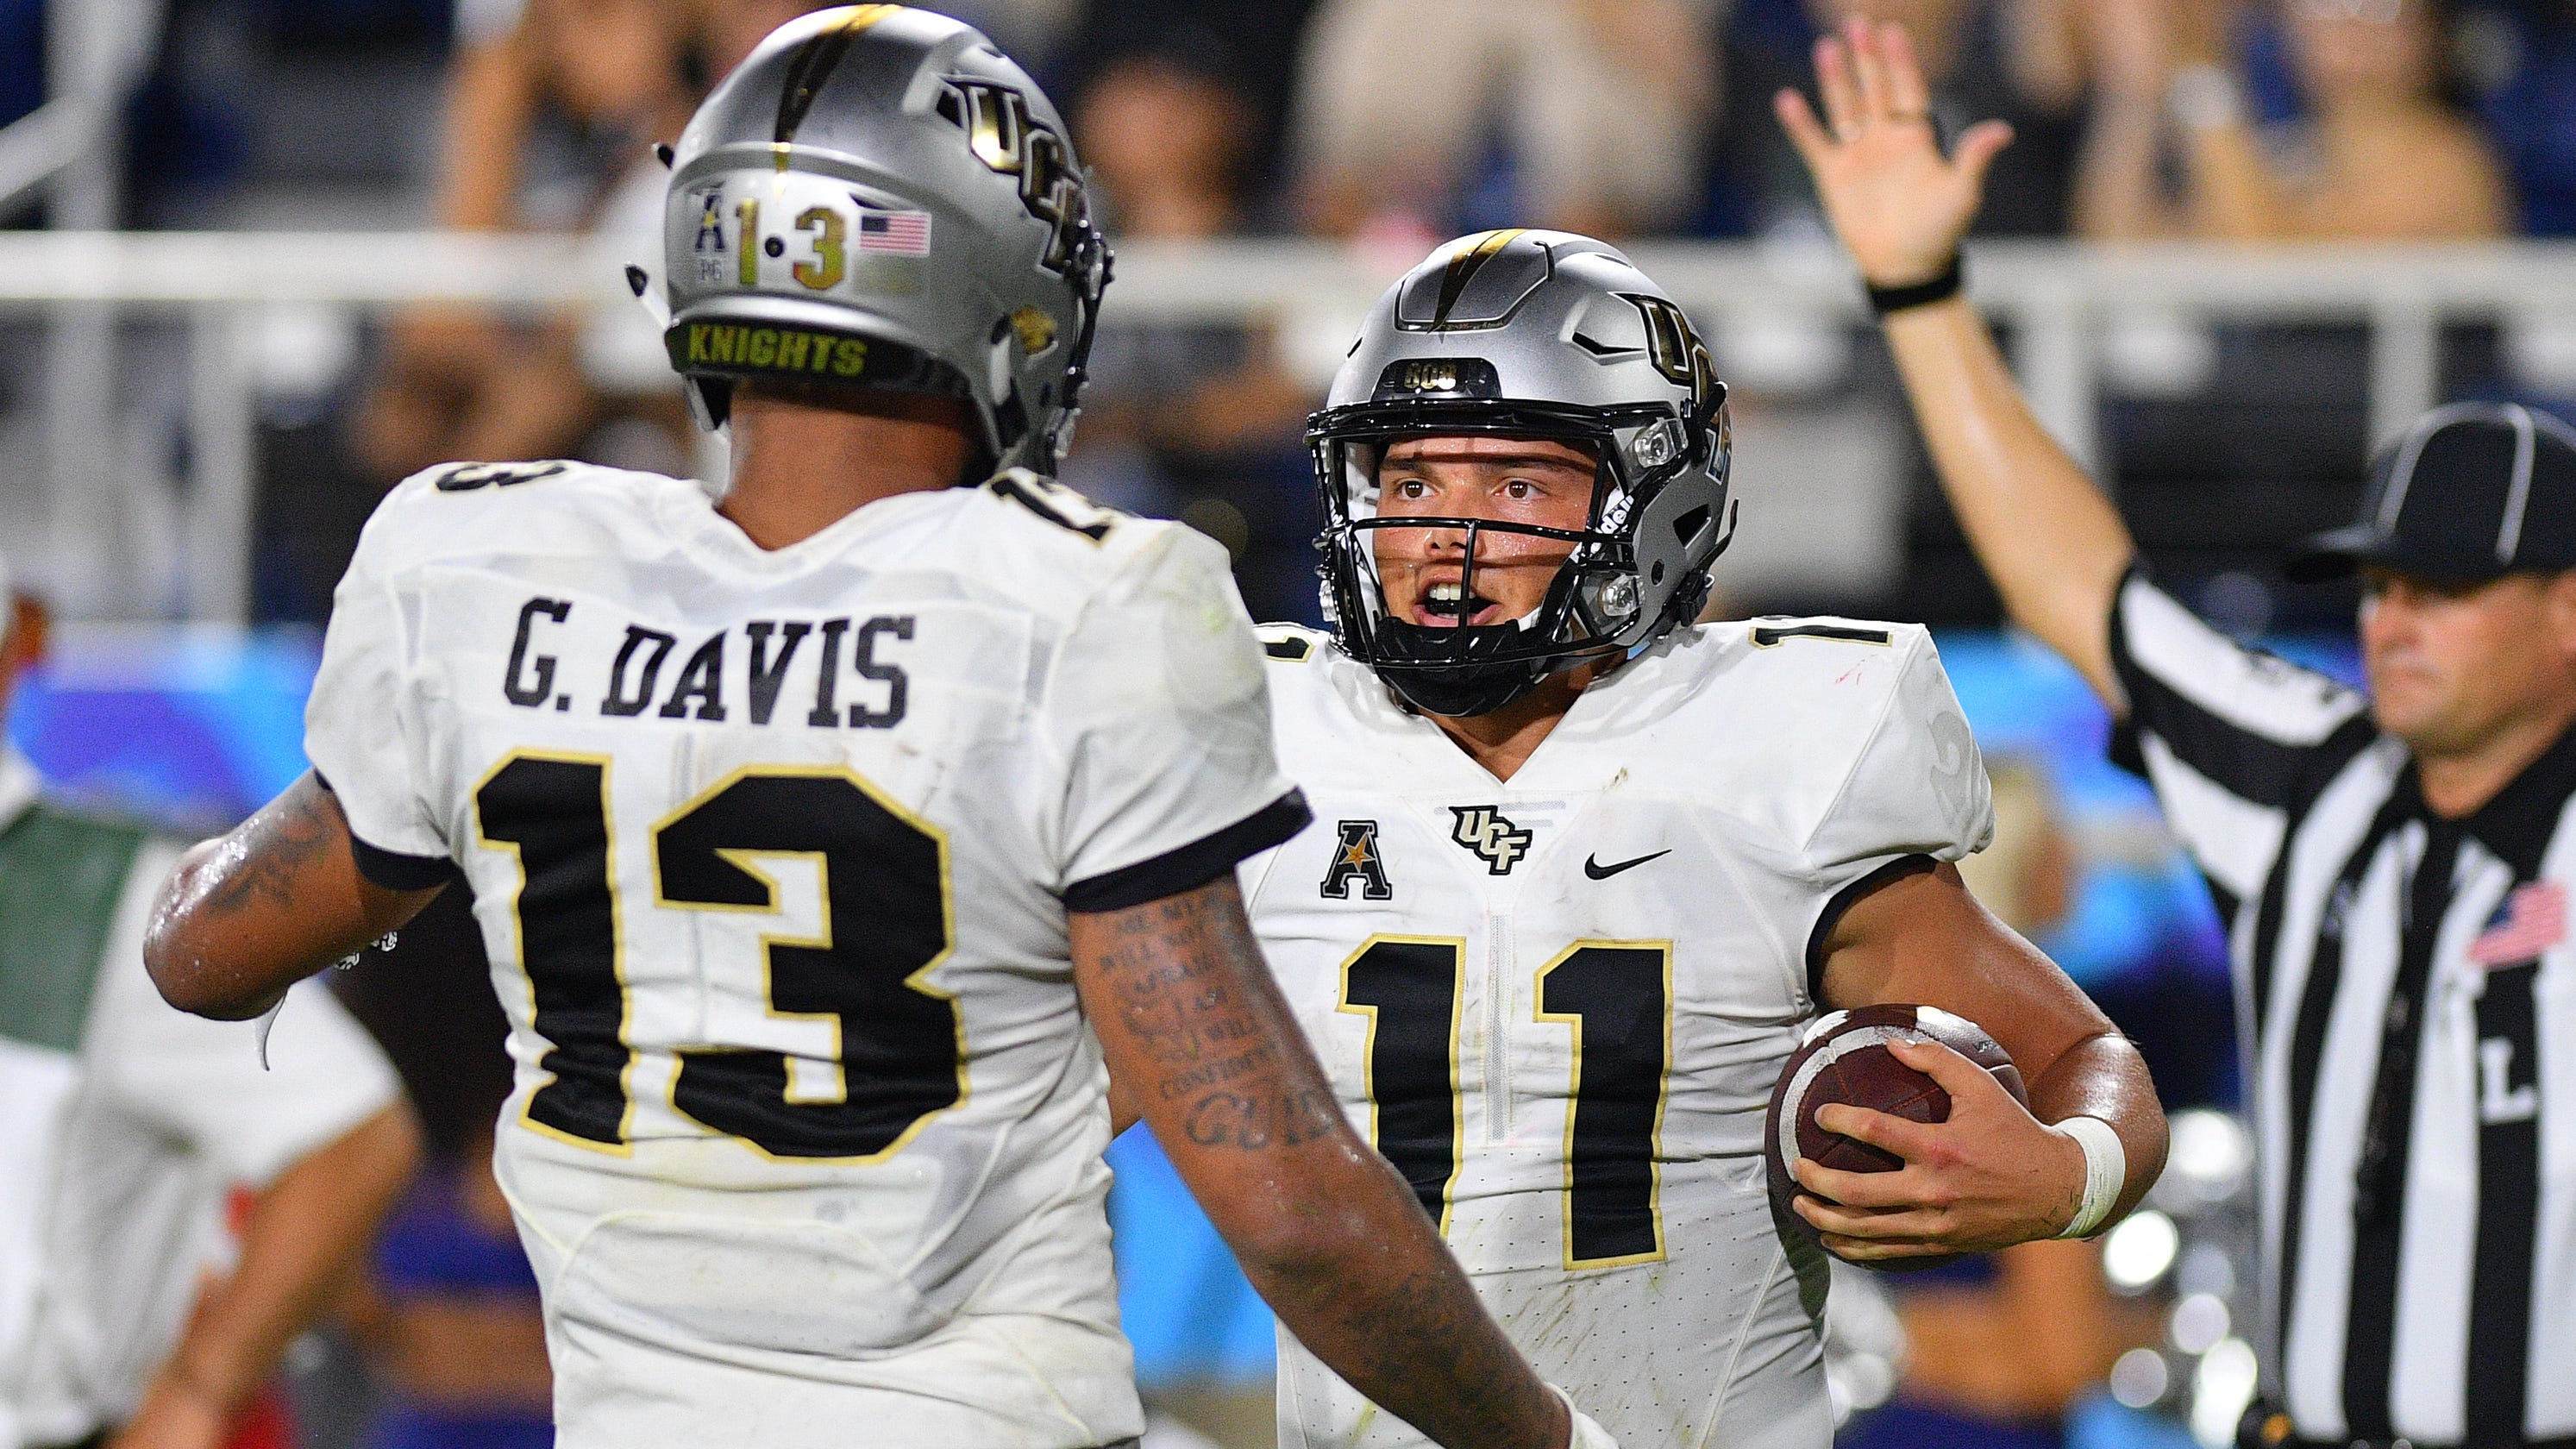 Next two weeks against Stanford, Pittsburgh could put No. 16 Central Florida back in spotlight